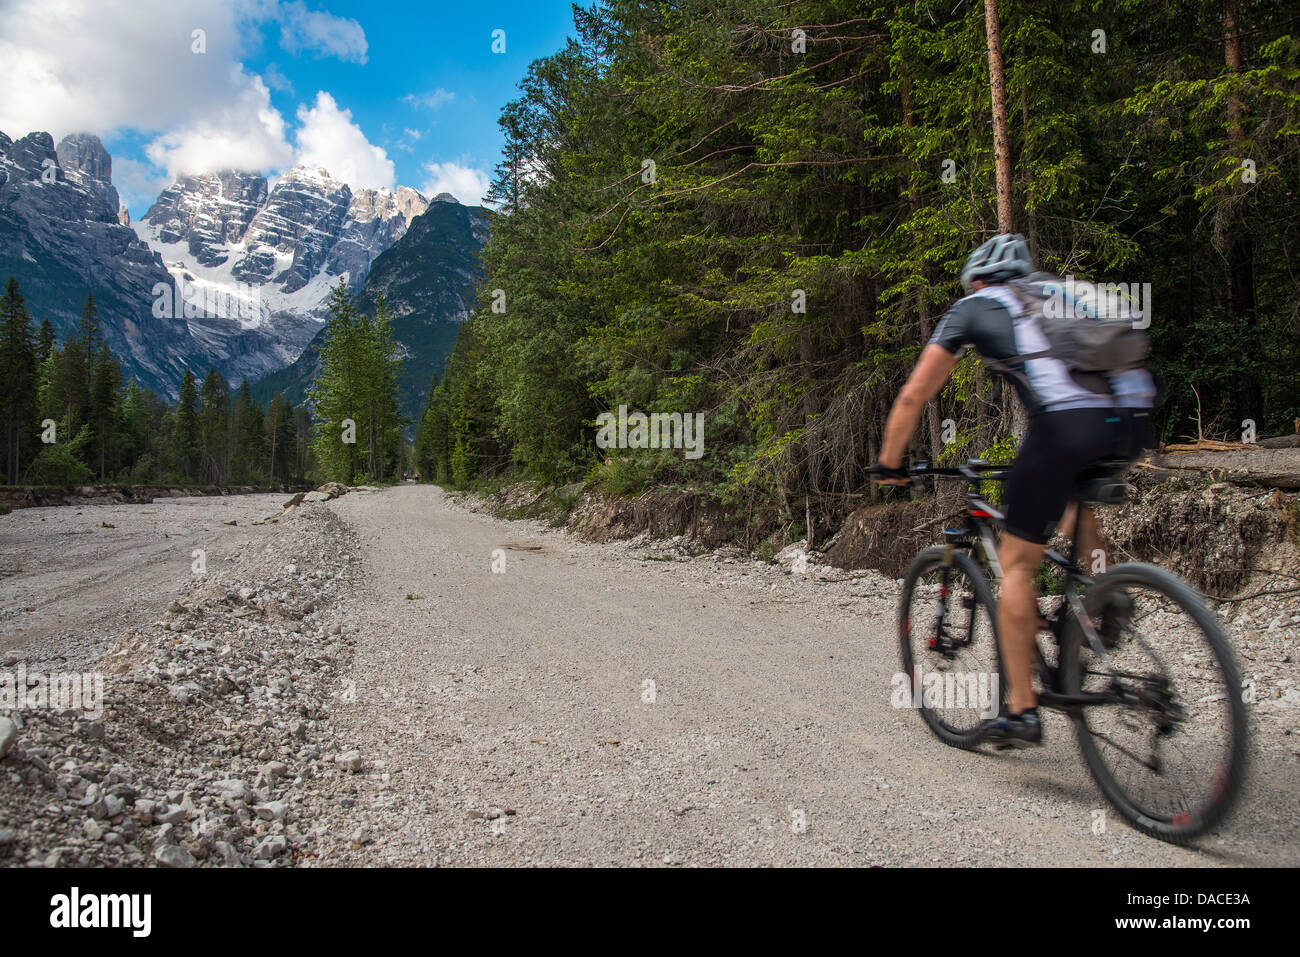 Mountain biker riding in the Dolomites, Alto Adige or South Tyrol, Italy - Stock Image